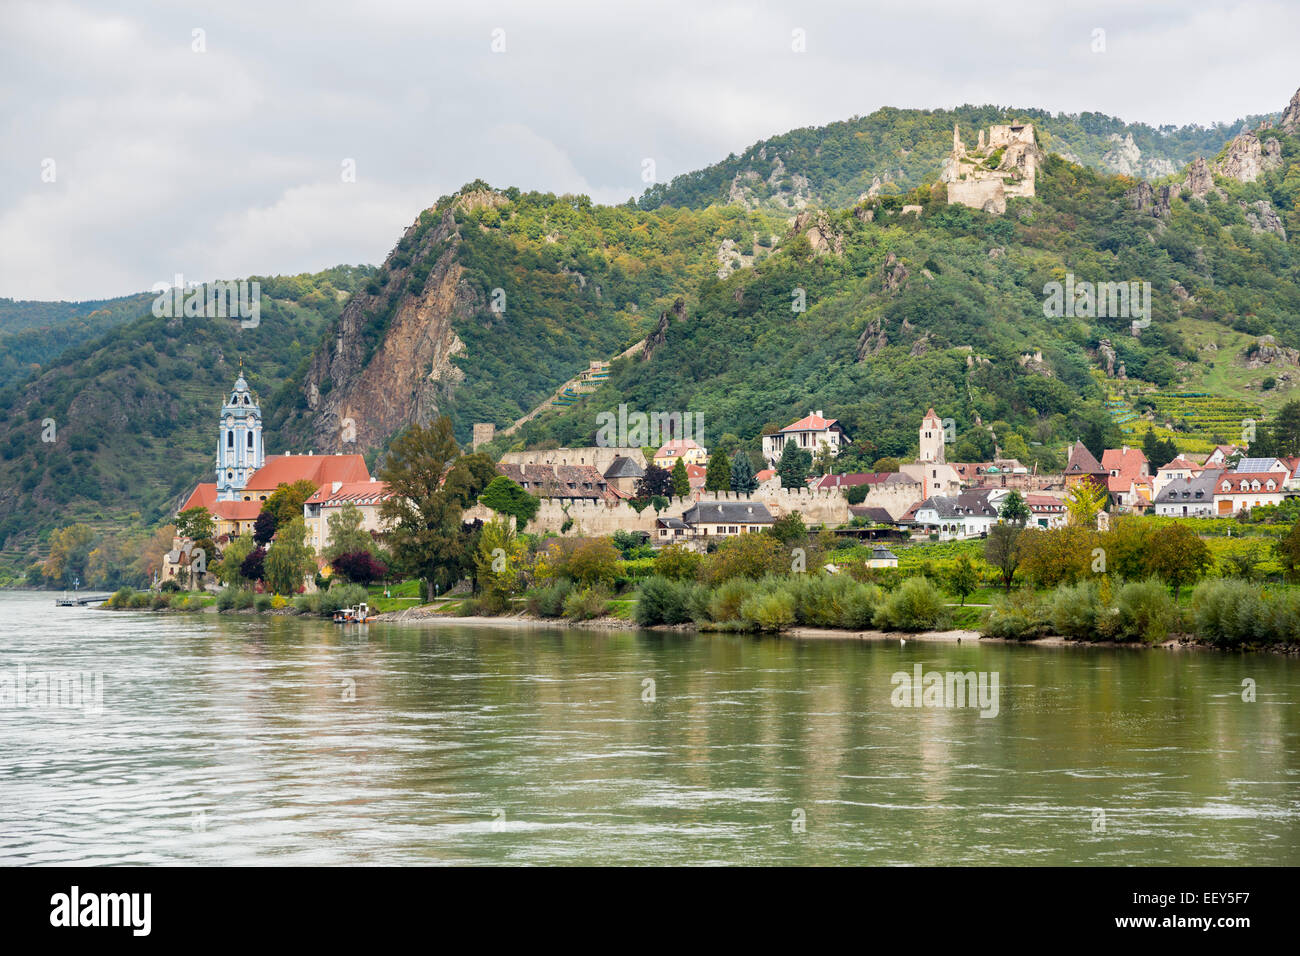 Ornate church, hilltop castle and buildings on banks of River Danube in Durnstein, Austria - Stock Image